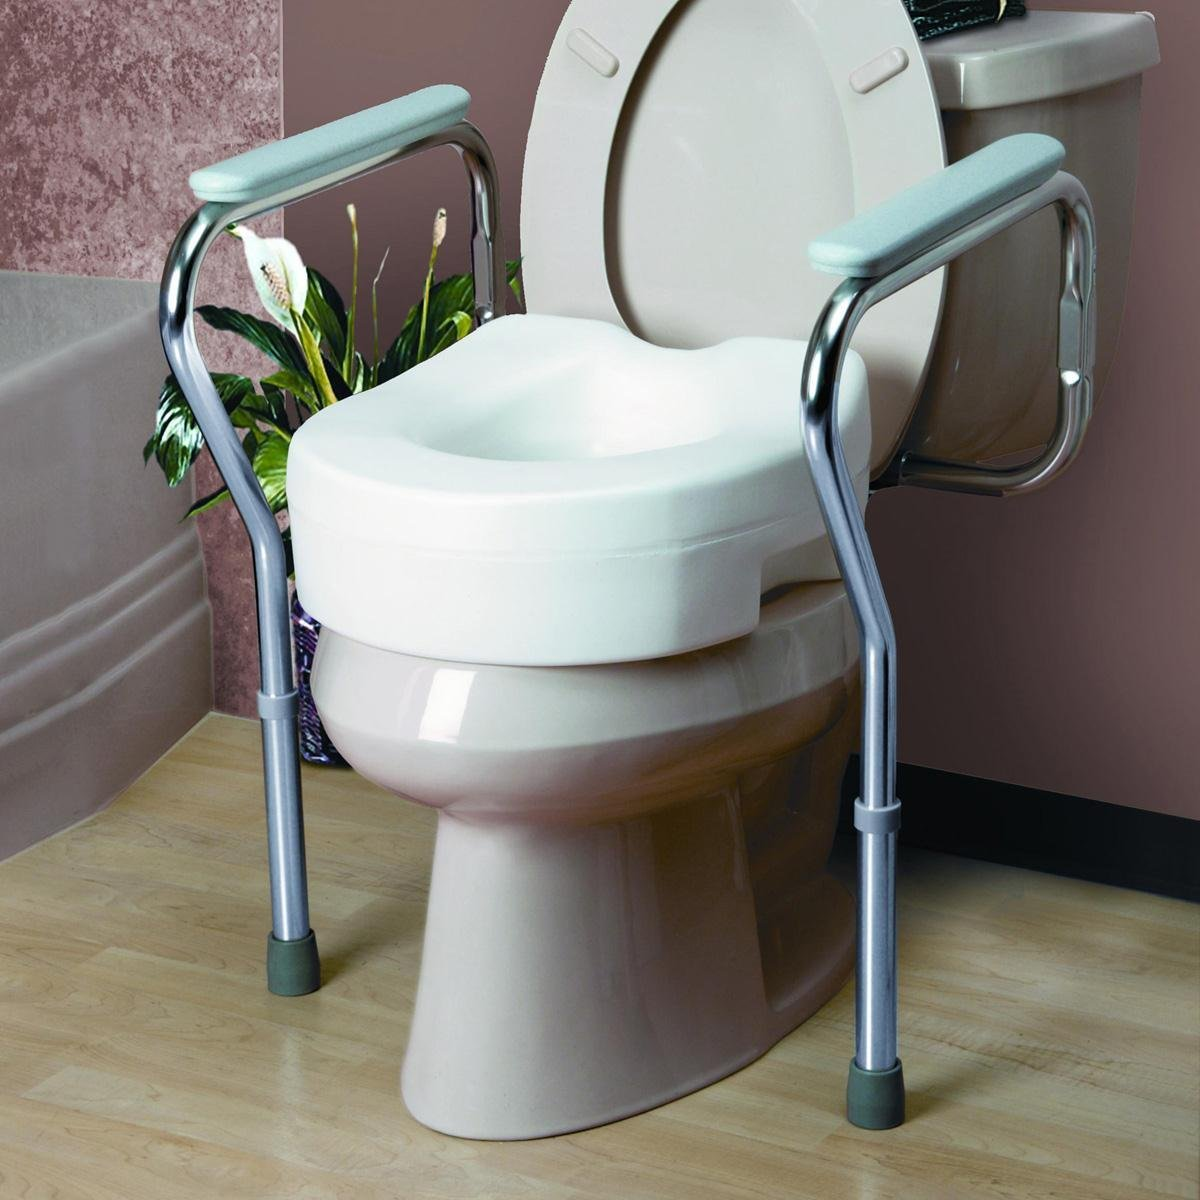 Amazon.com: Invacare Toilet Safety Frame: Health & Personal Care